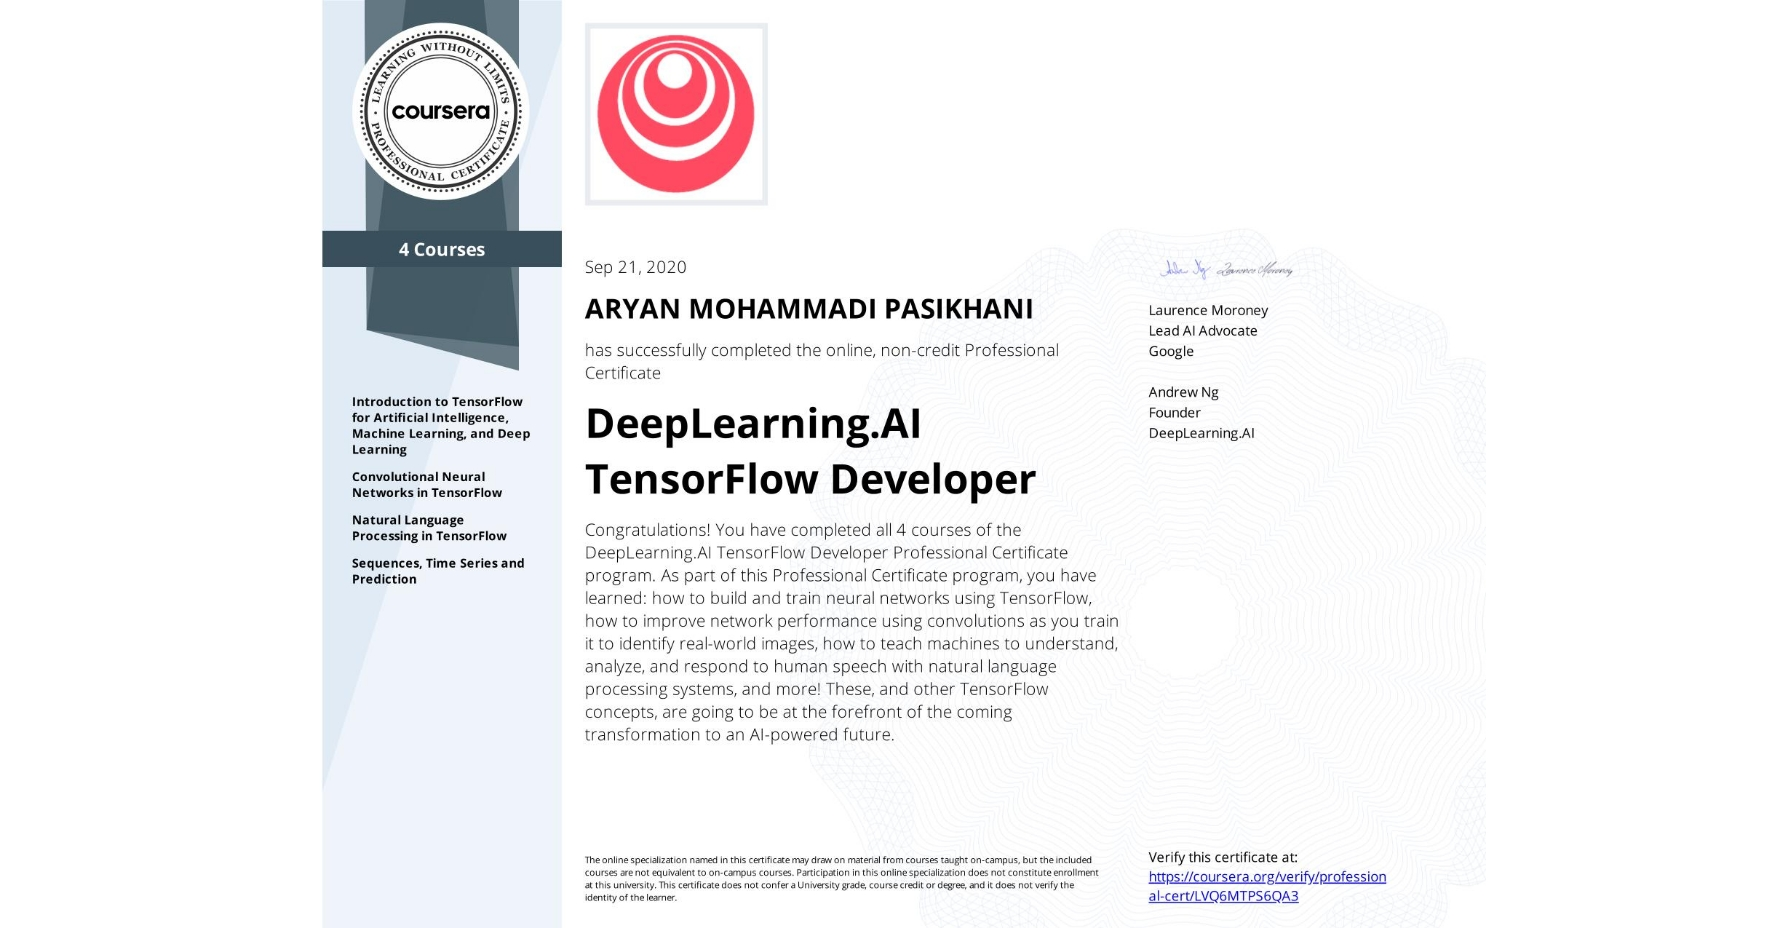 View certificate for ARYAN MOHAMMADI PASIKHANI, DeepLearning.AI TensorFlow Developer, offered through Coursera. Congratulations! You have completed all 4 courses of the DeepLearning.AI TensorFlow Developer Professional Certificate program.   As part of this Professional Certificate program, you have learned: how to build and train neural networks using TensorFlow, how to improve network performance using convolutions as you train it to identify real-world images, how to teach machines to understand, analyze, and respond to human speech with natural language processing systems, and more!  These, and other TensorFlow concepts, are going to be at the forefront of the coming transformation to an AI-powered future.